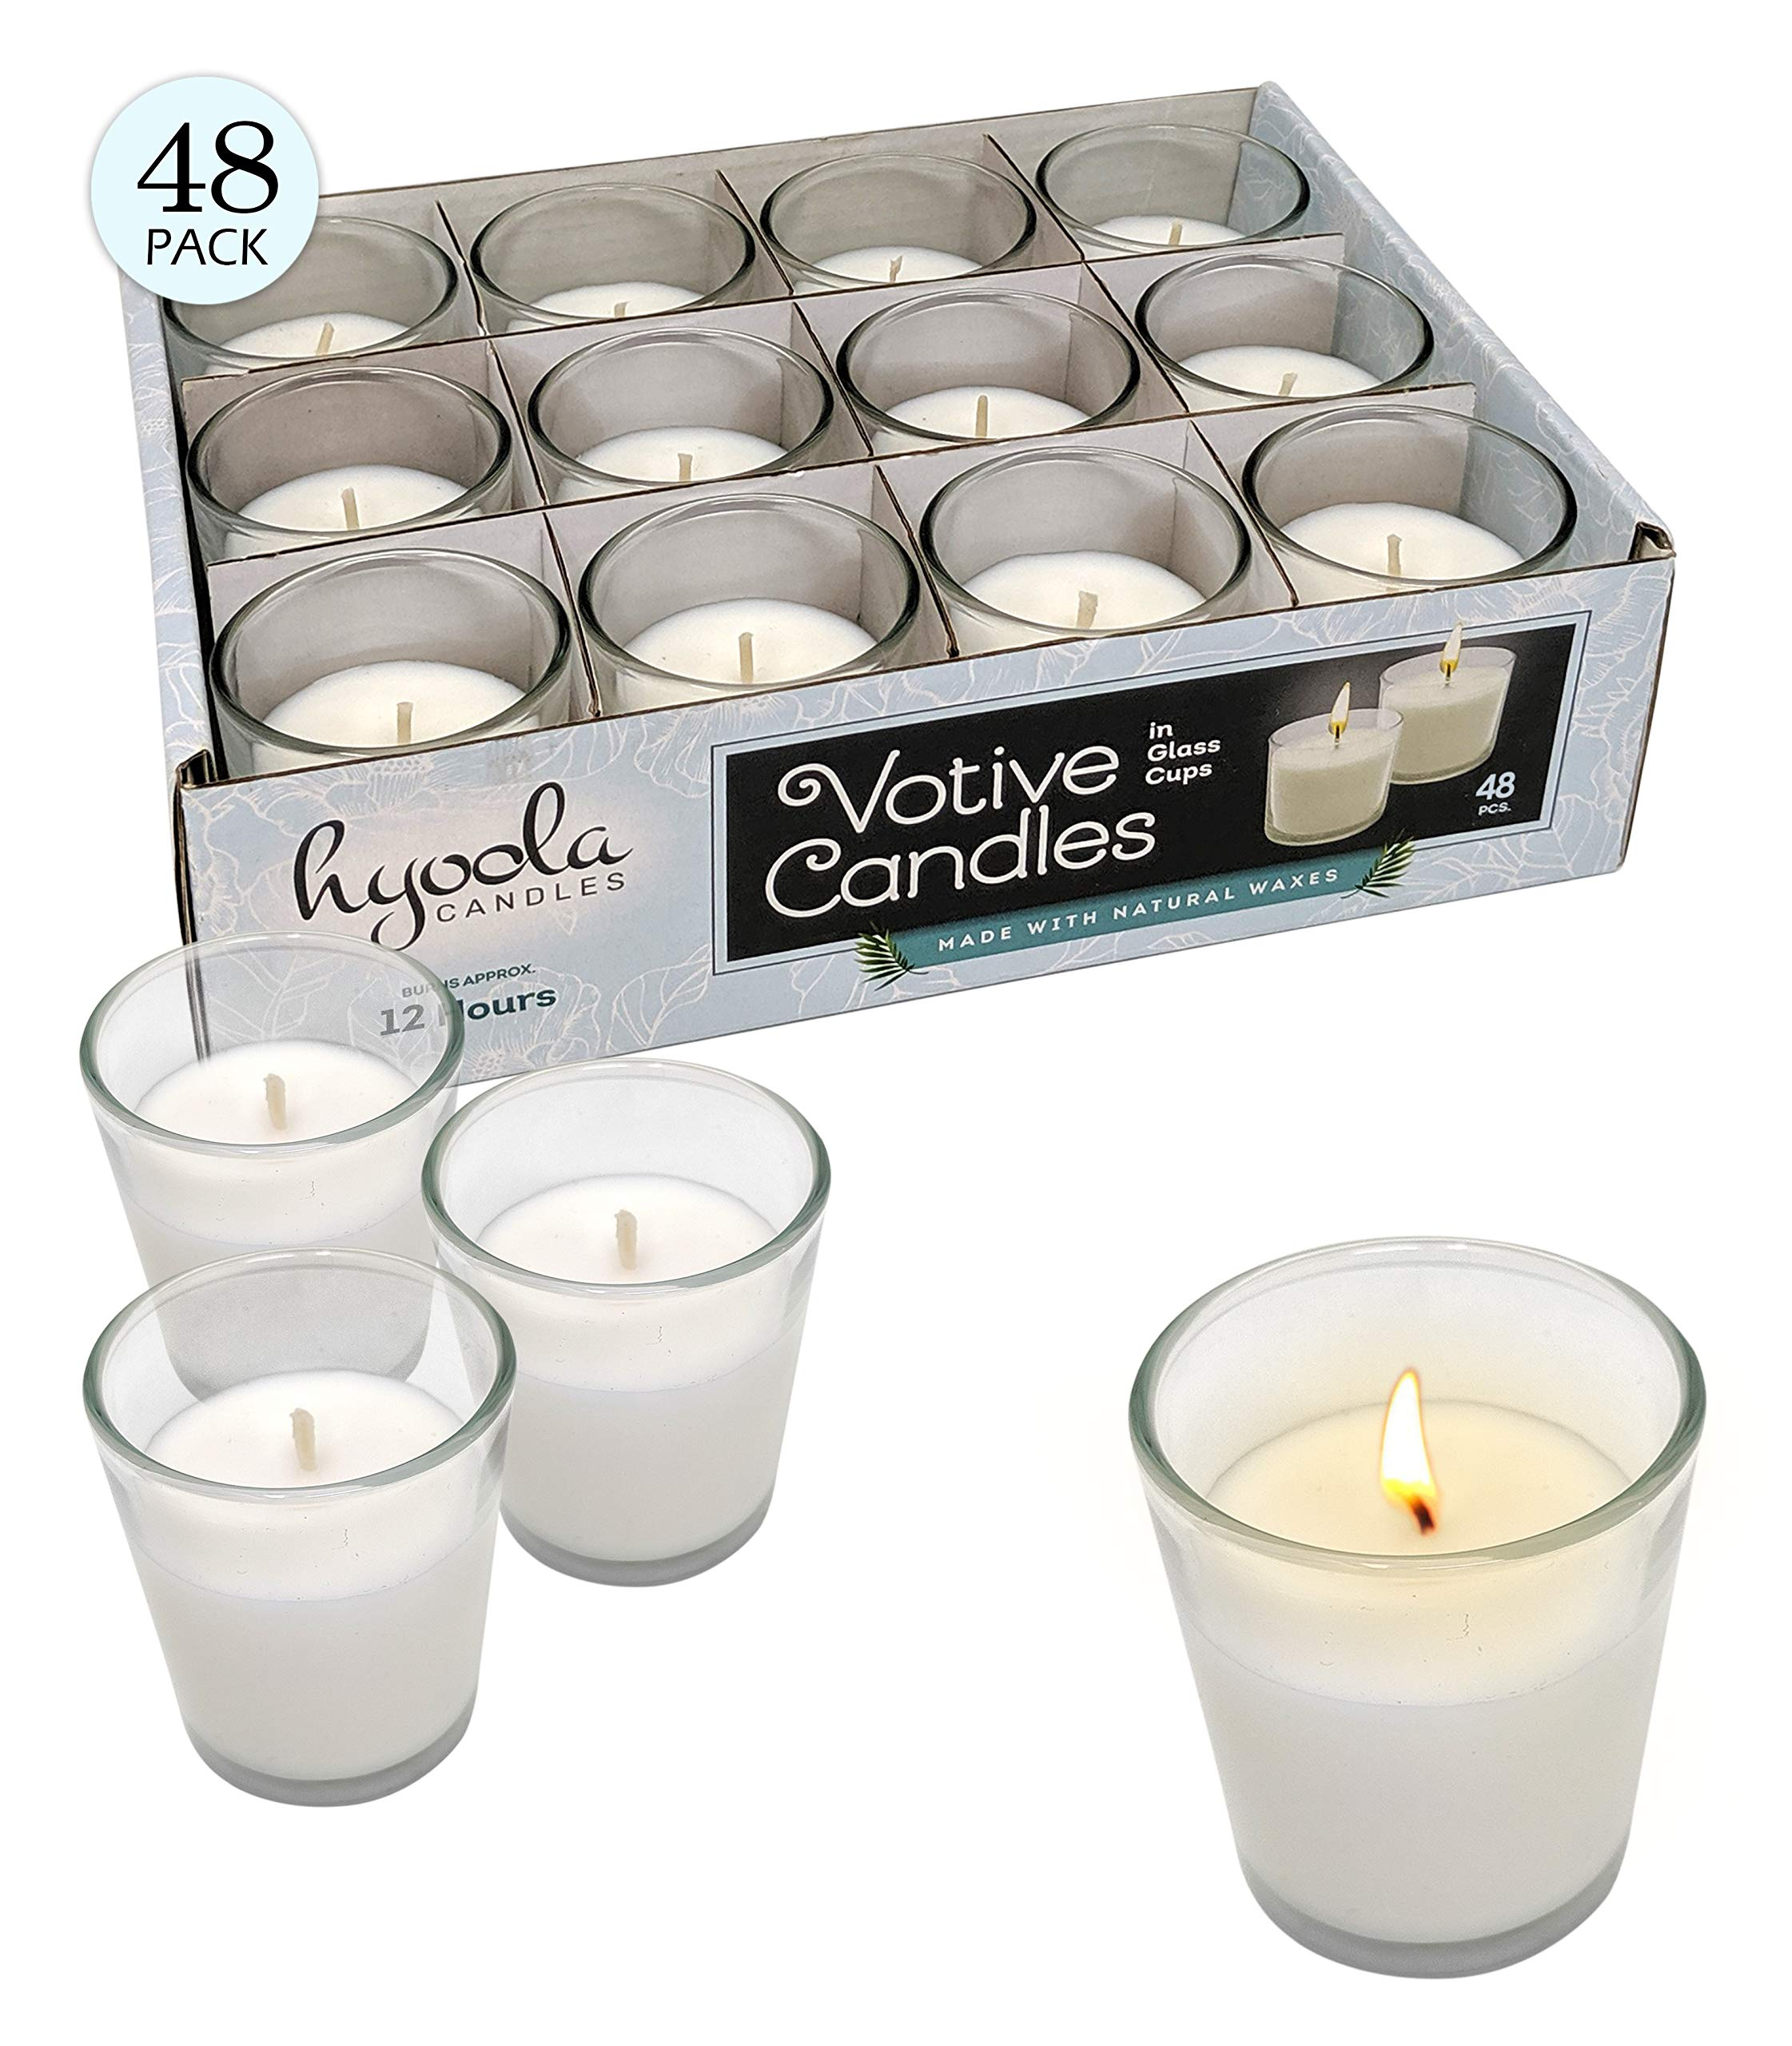 Hyoola White Votive Candles - 48 Pack - Clear Glass Cups, Unscented, Long 12 Hour Burn Time - for Party Decorations, Birthday, Wedding and Dinner Centerpieces by Hyoola